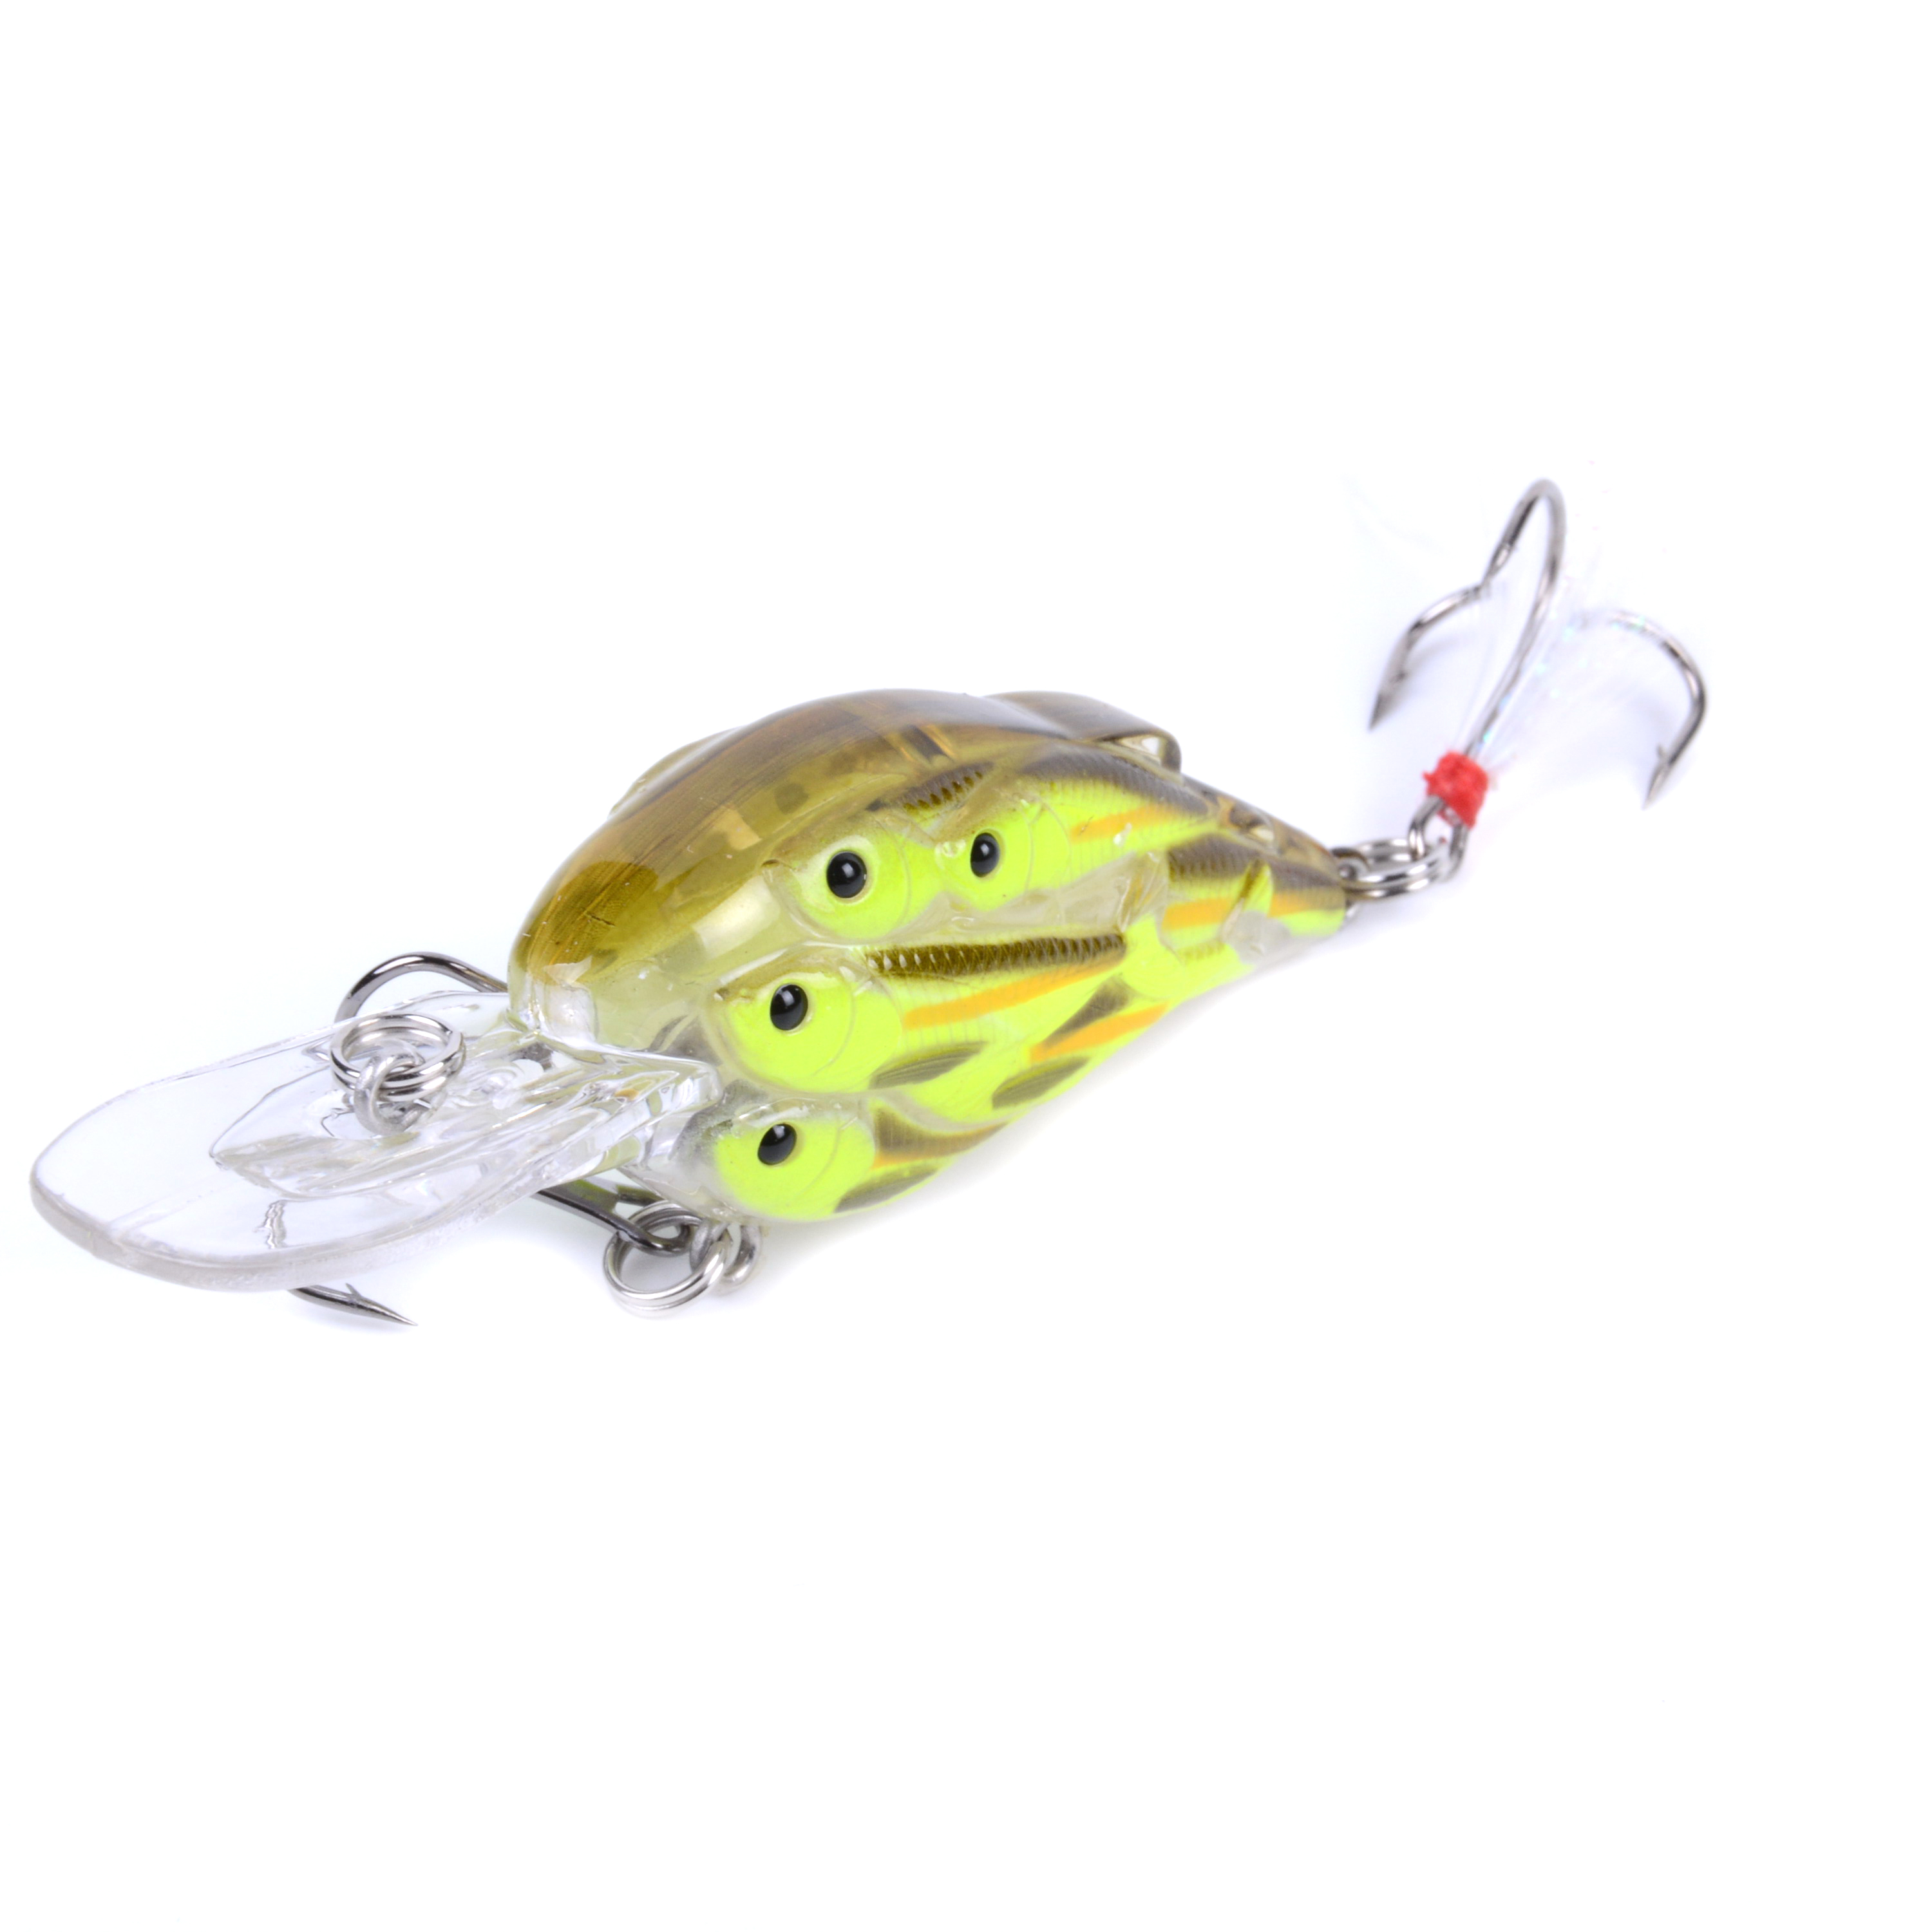 Buy 1pcs 6g 9g minnow popper fishing lure for Fish bait store